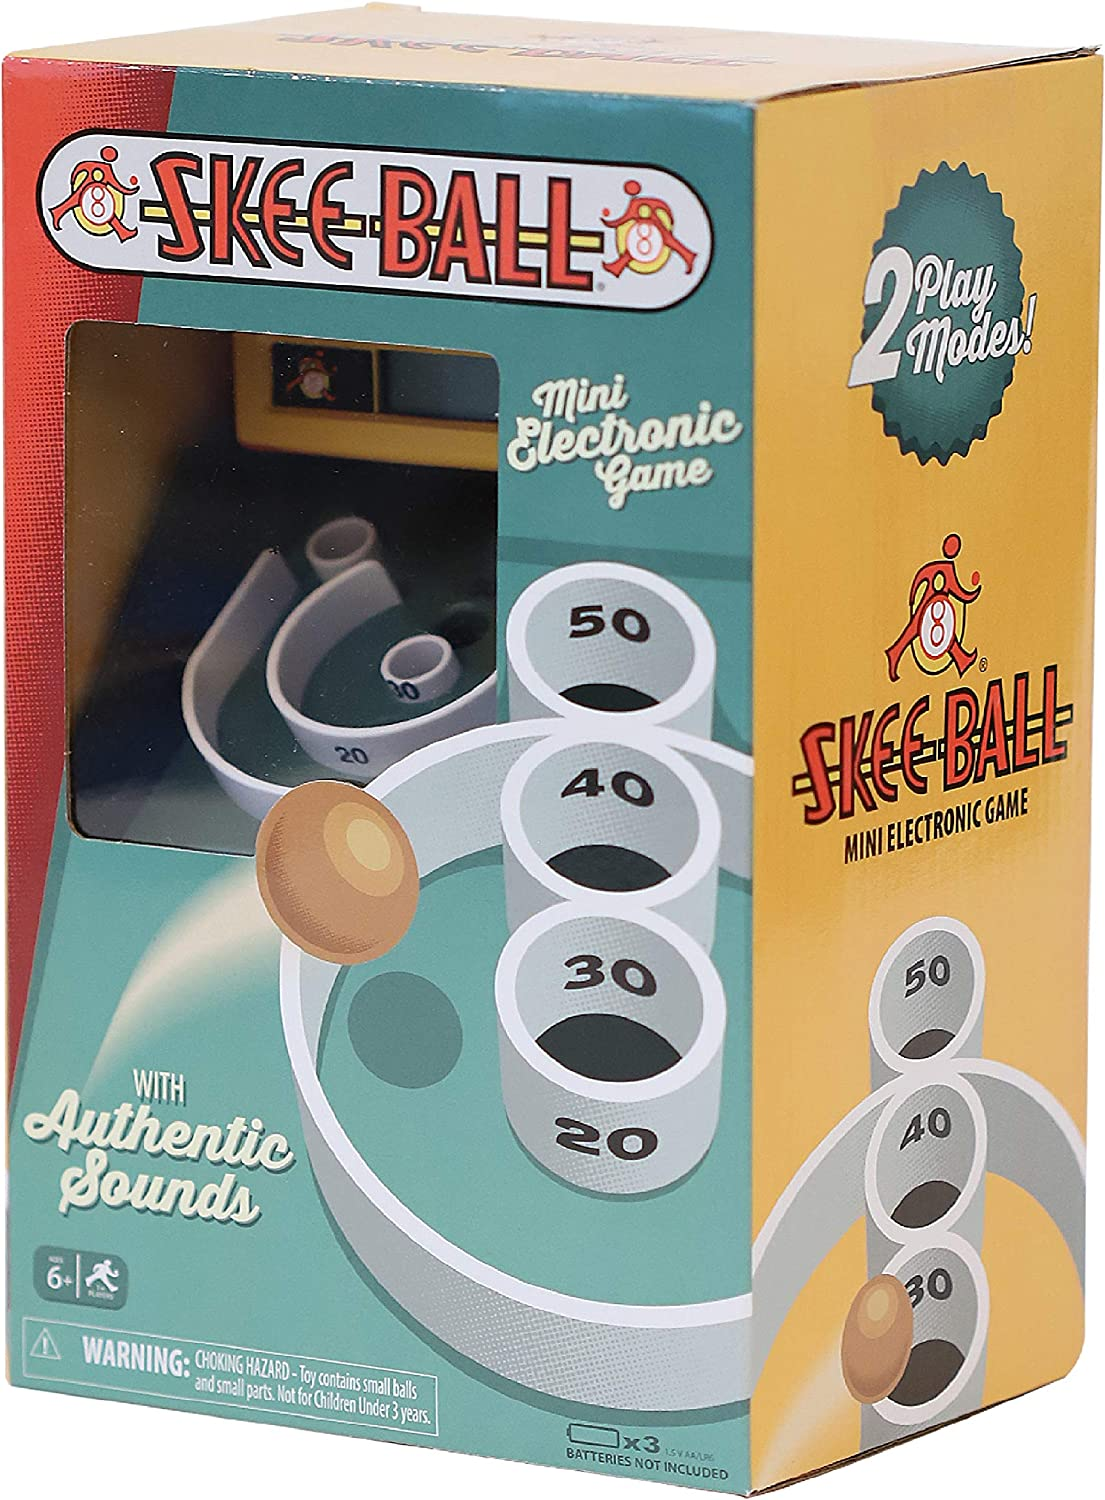 Skee Ball - Retro Handheld Mini Electronic Game with Authentic Sounds